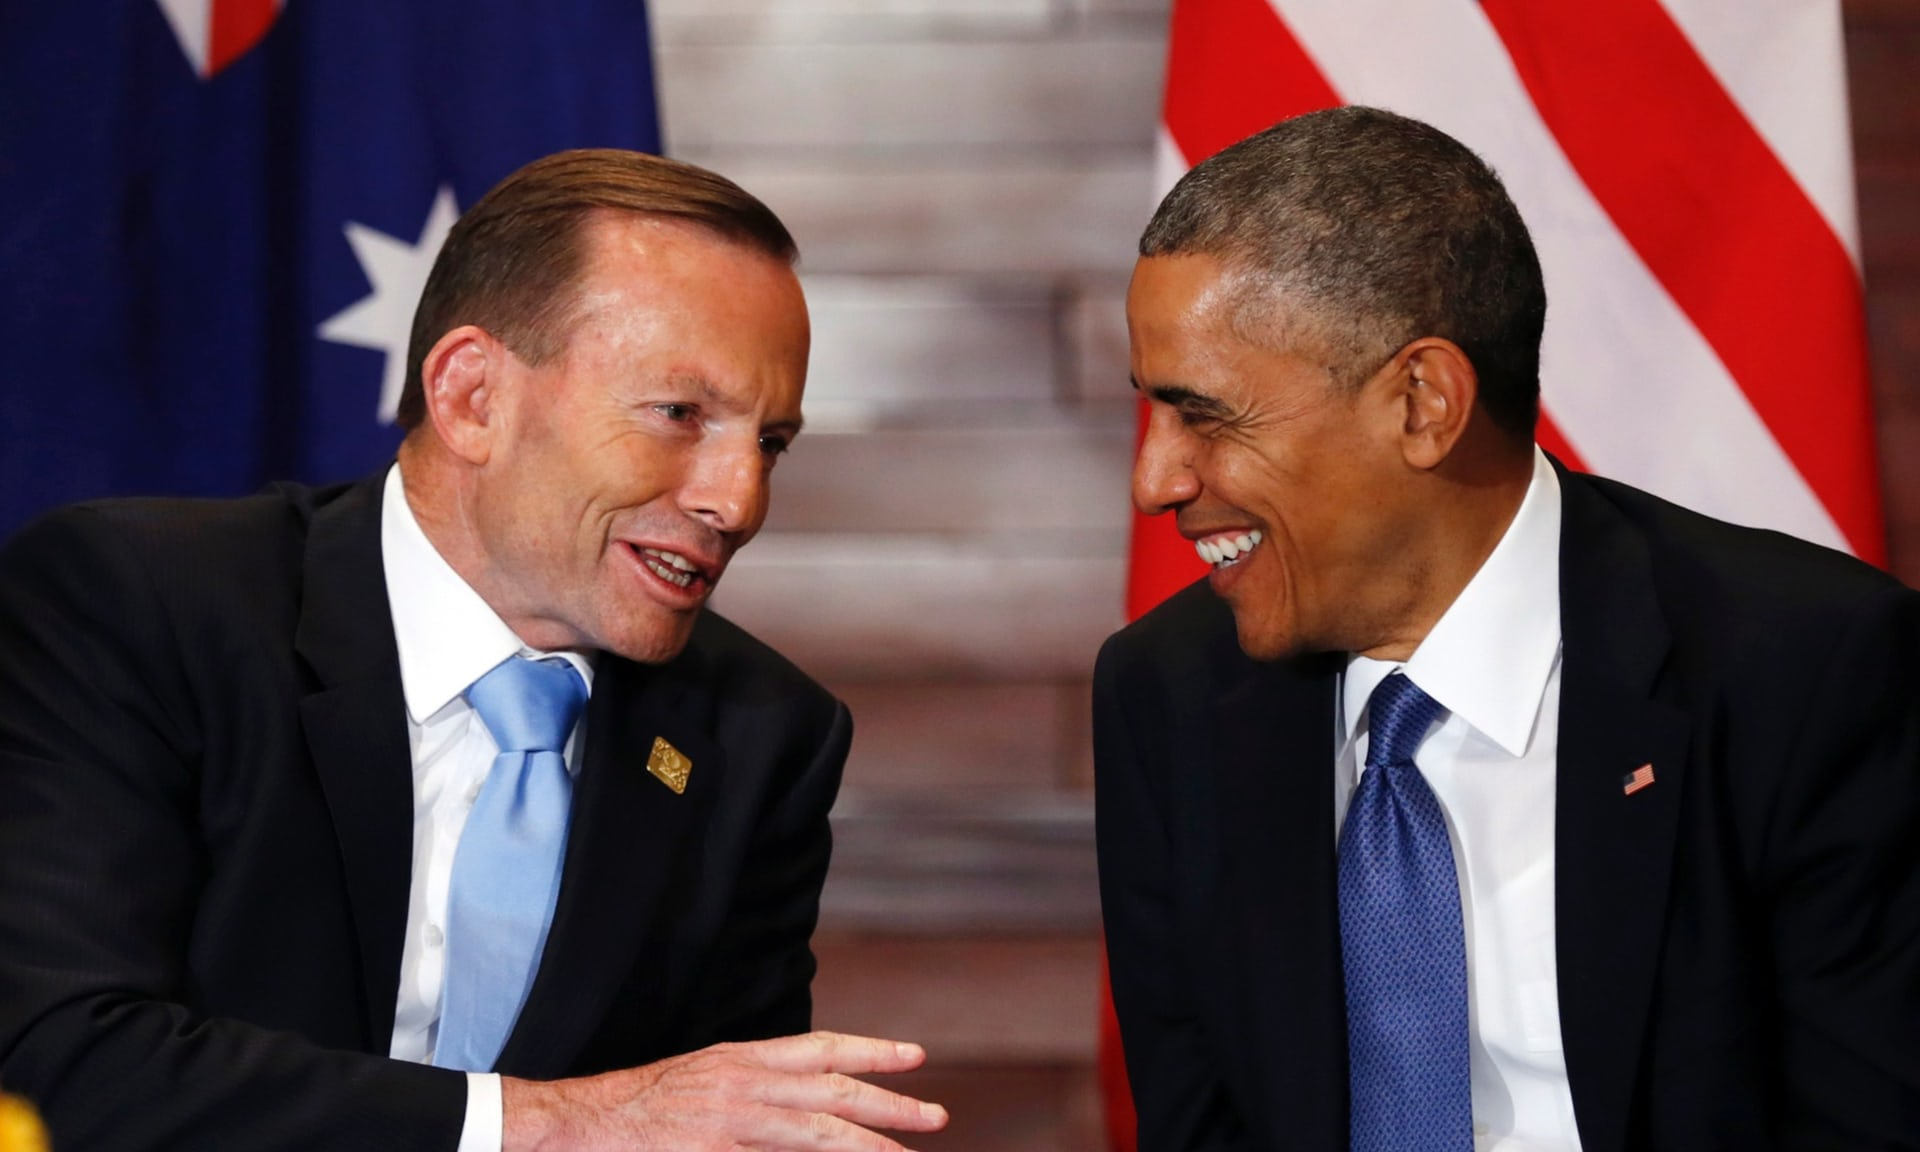 Former Australian Prime Minister Tony Abbott and former President Barack Obama in 2014 (Kevin Lamarque/Reuters)